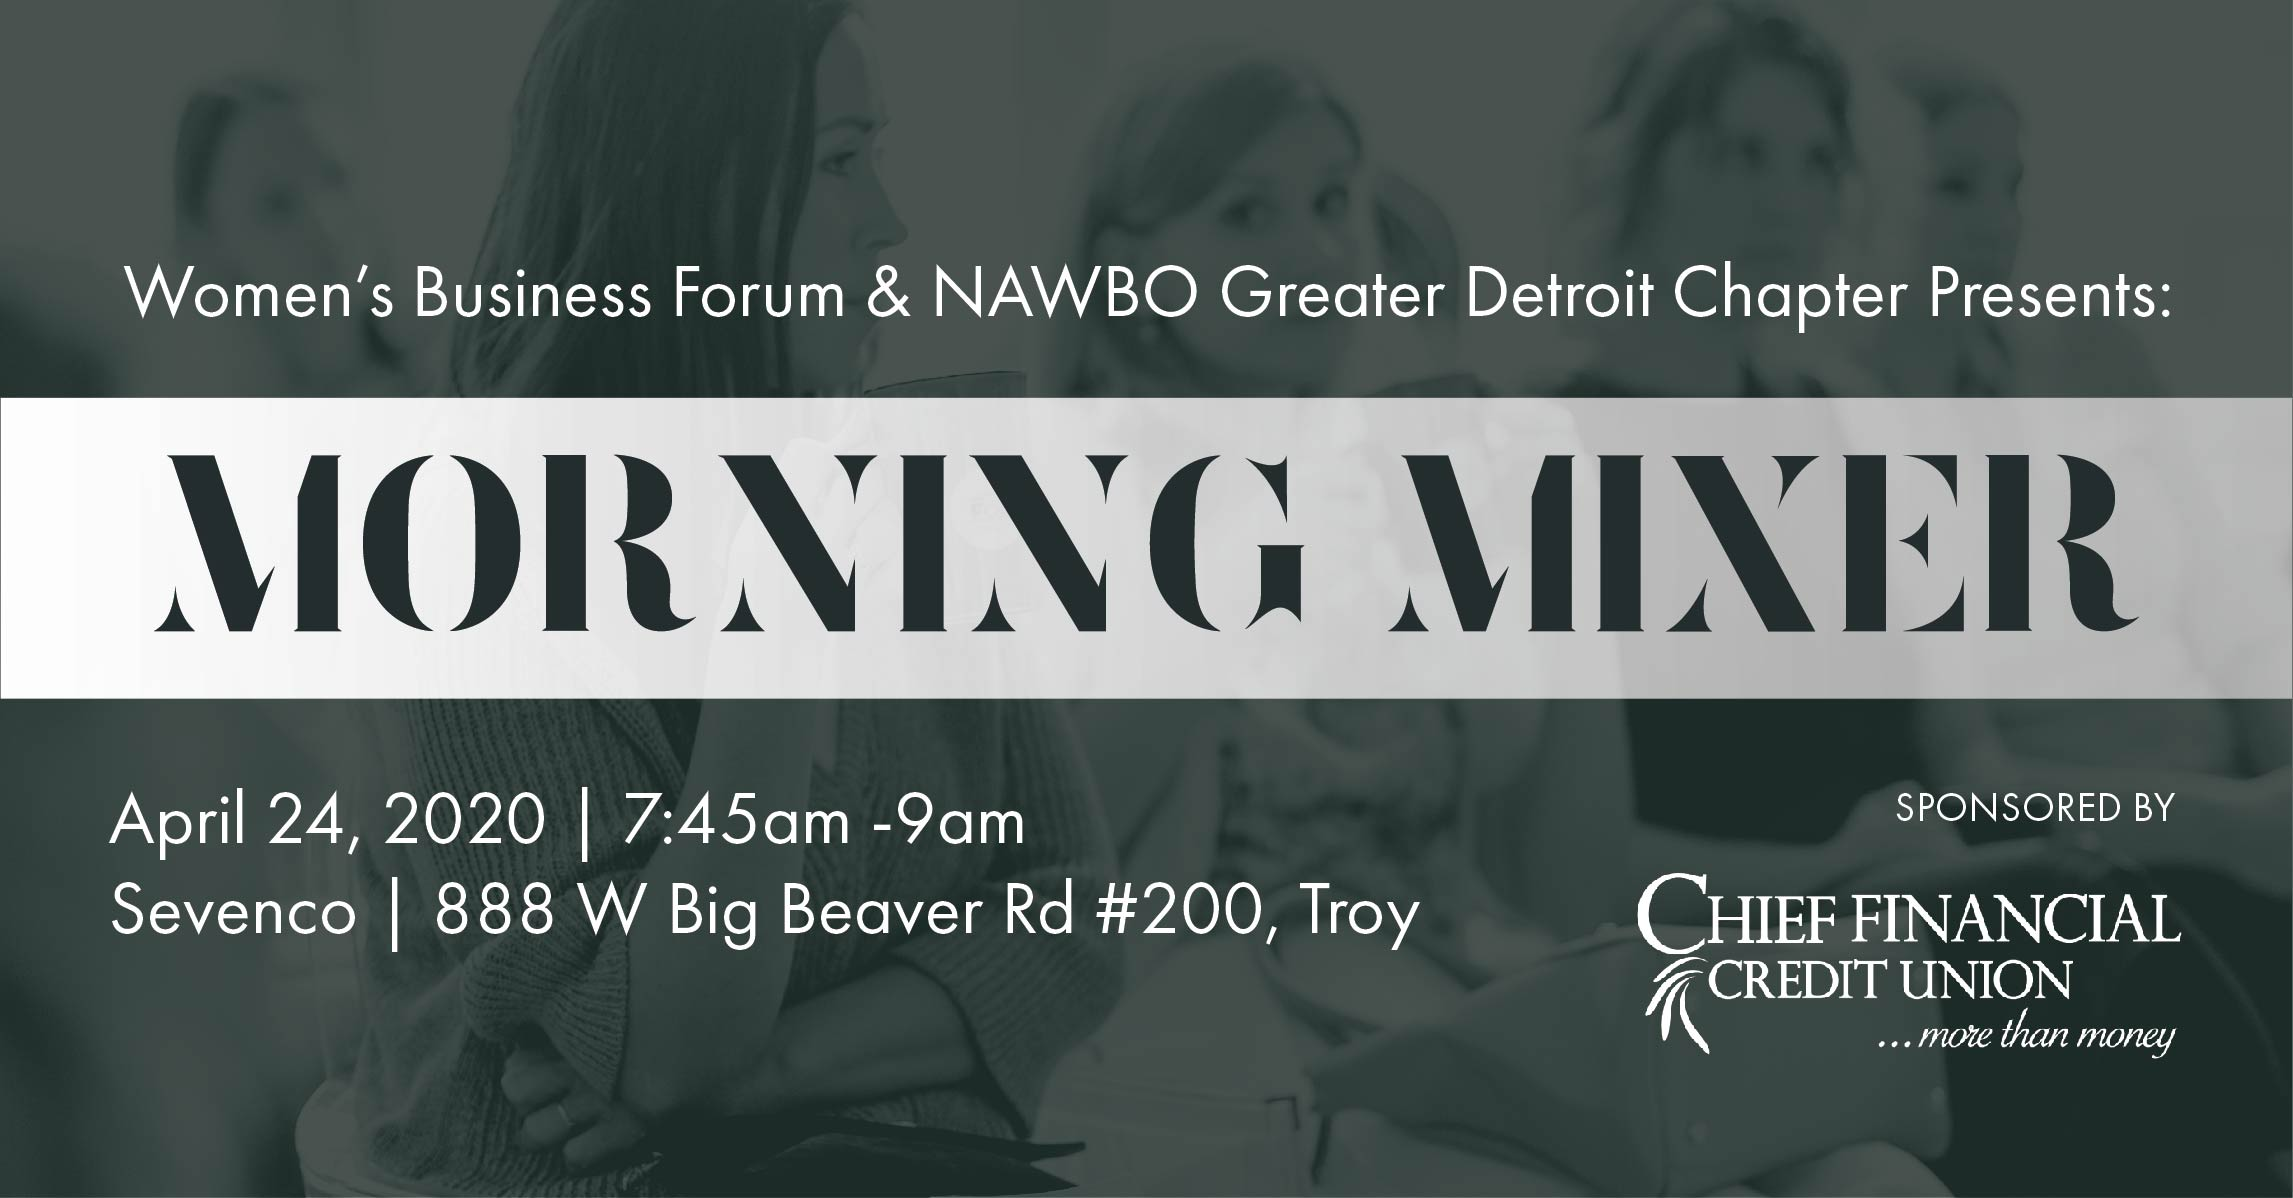 Women's Business Forum & NAWBO Greater Detroit Chapter Presents: Morning Mixer